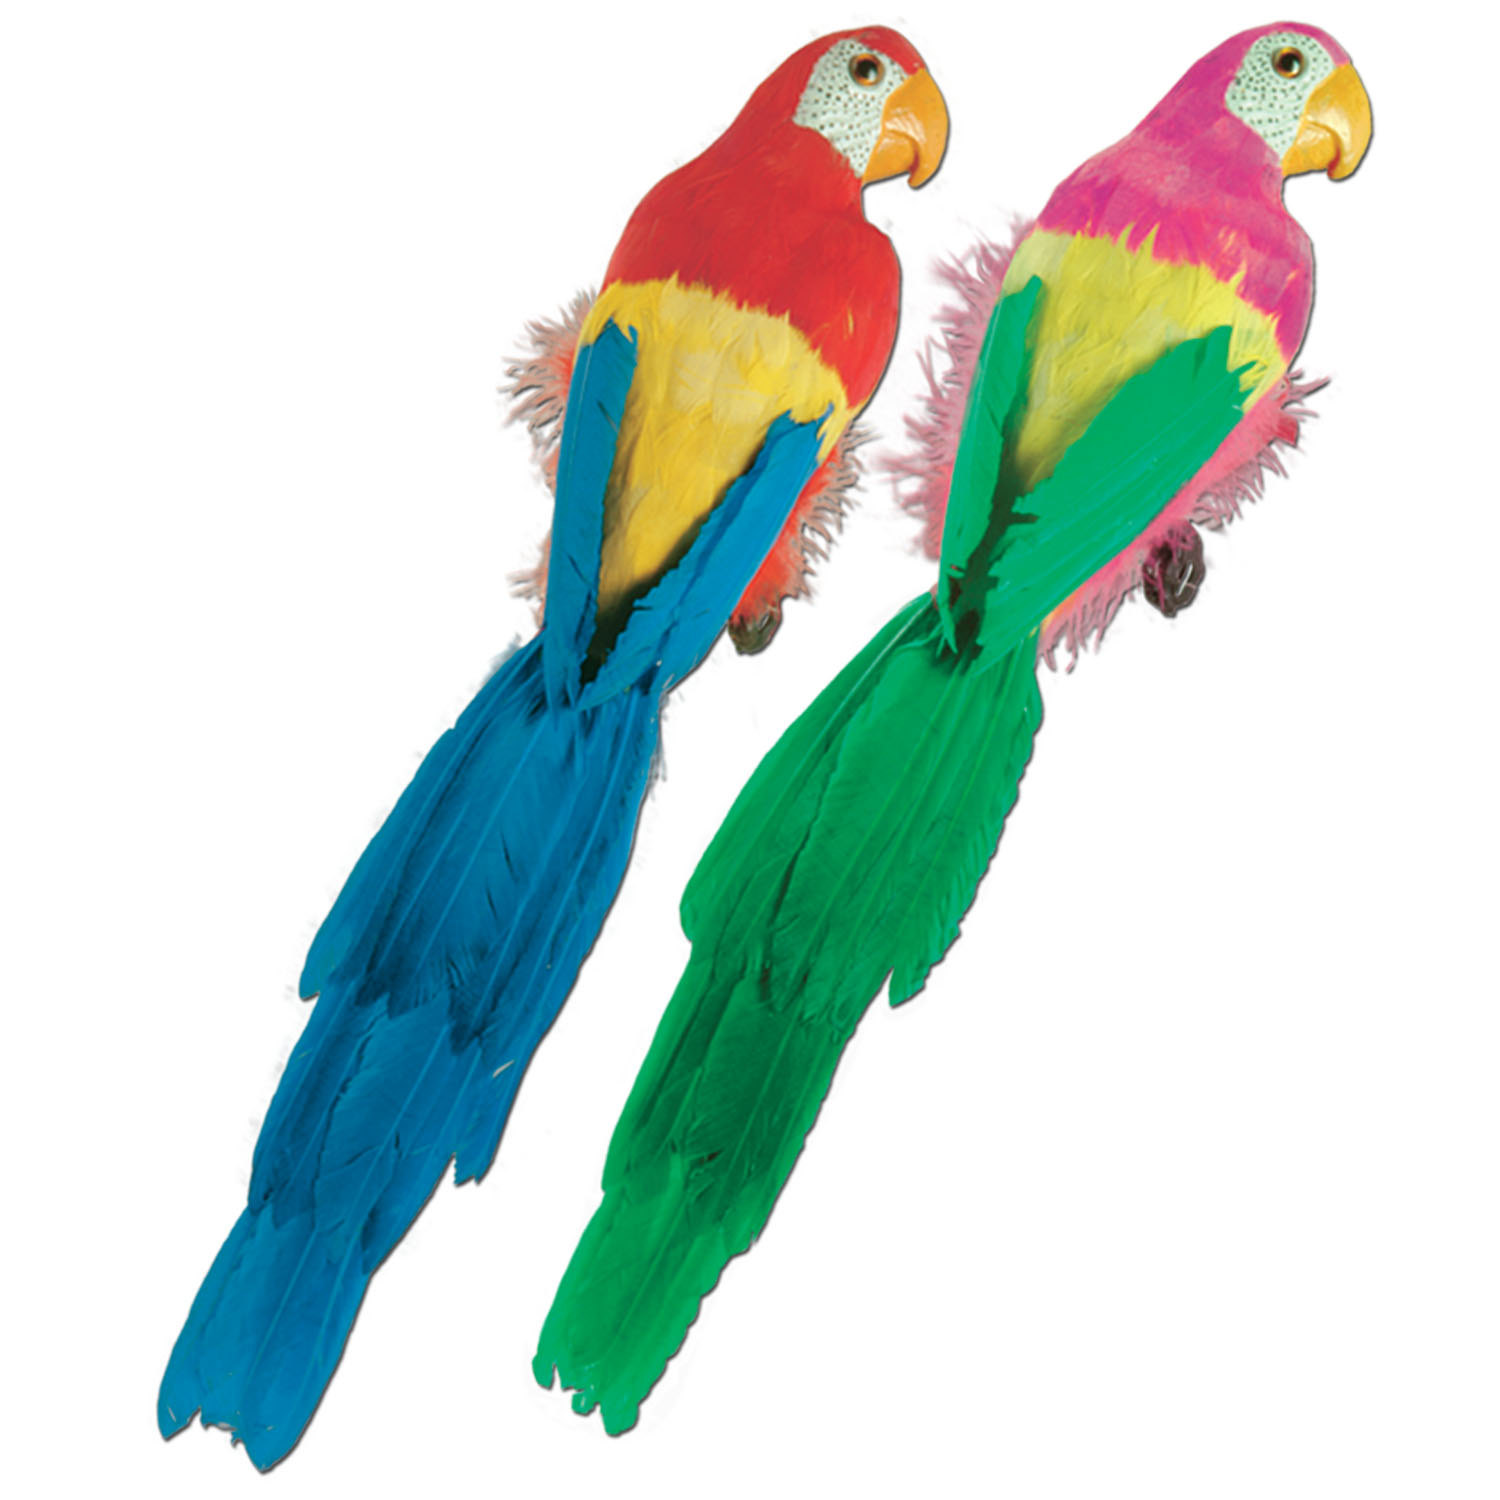 Feathered Parrots (Pack of 6) Luau, feather, parrot, pirate, costumes, accessories, halloween